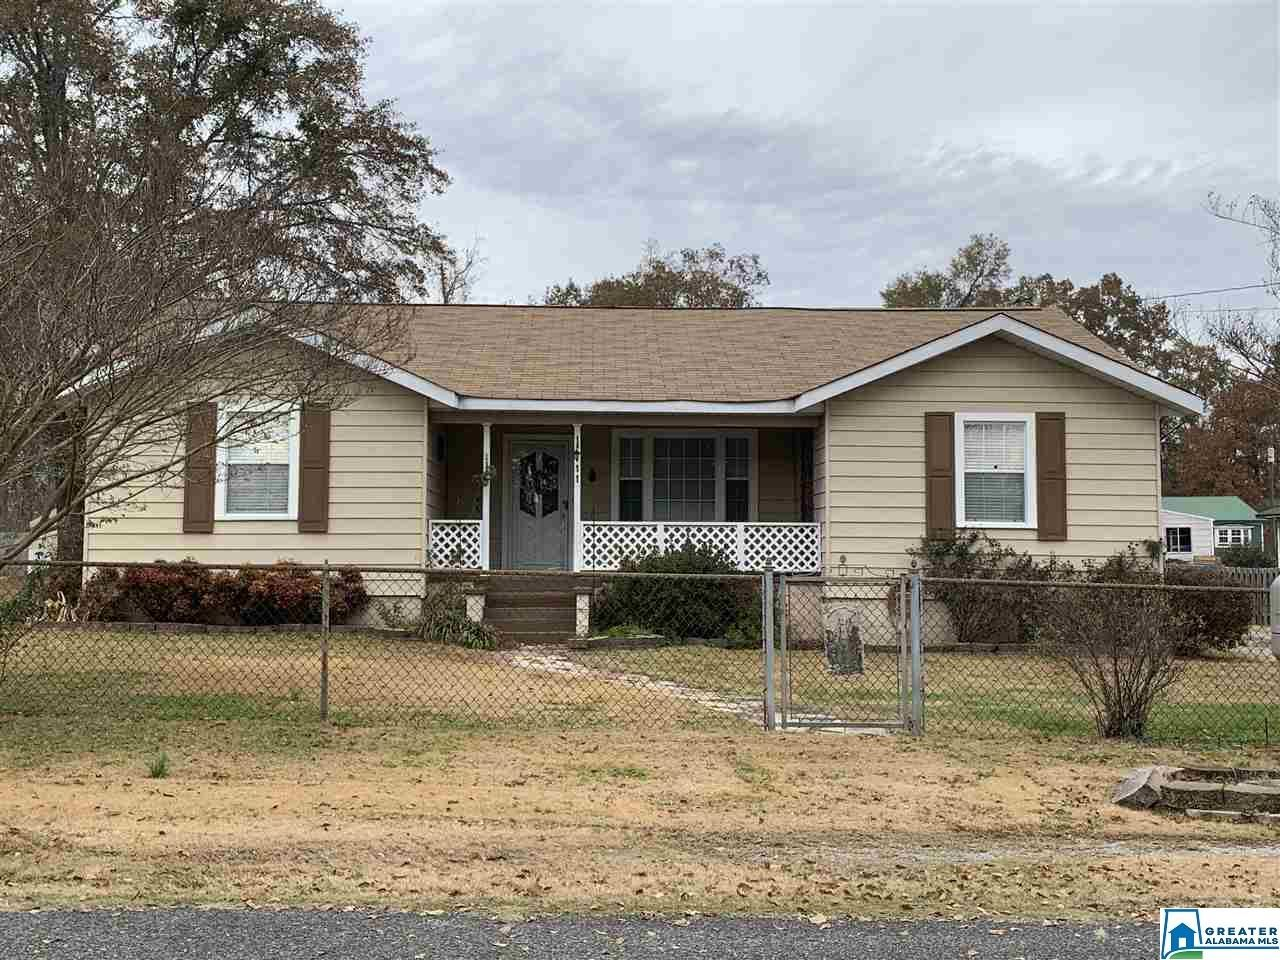 111 MARION ST, Warrior, AL 35180 - #: 868351